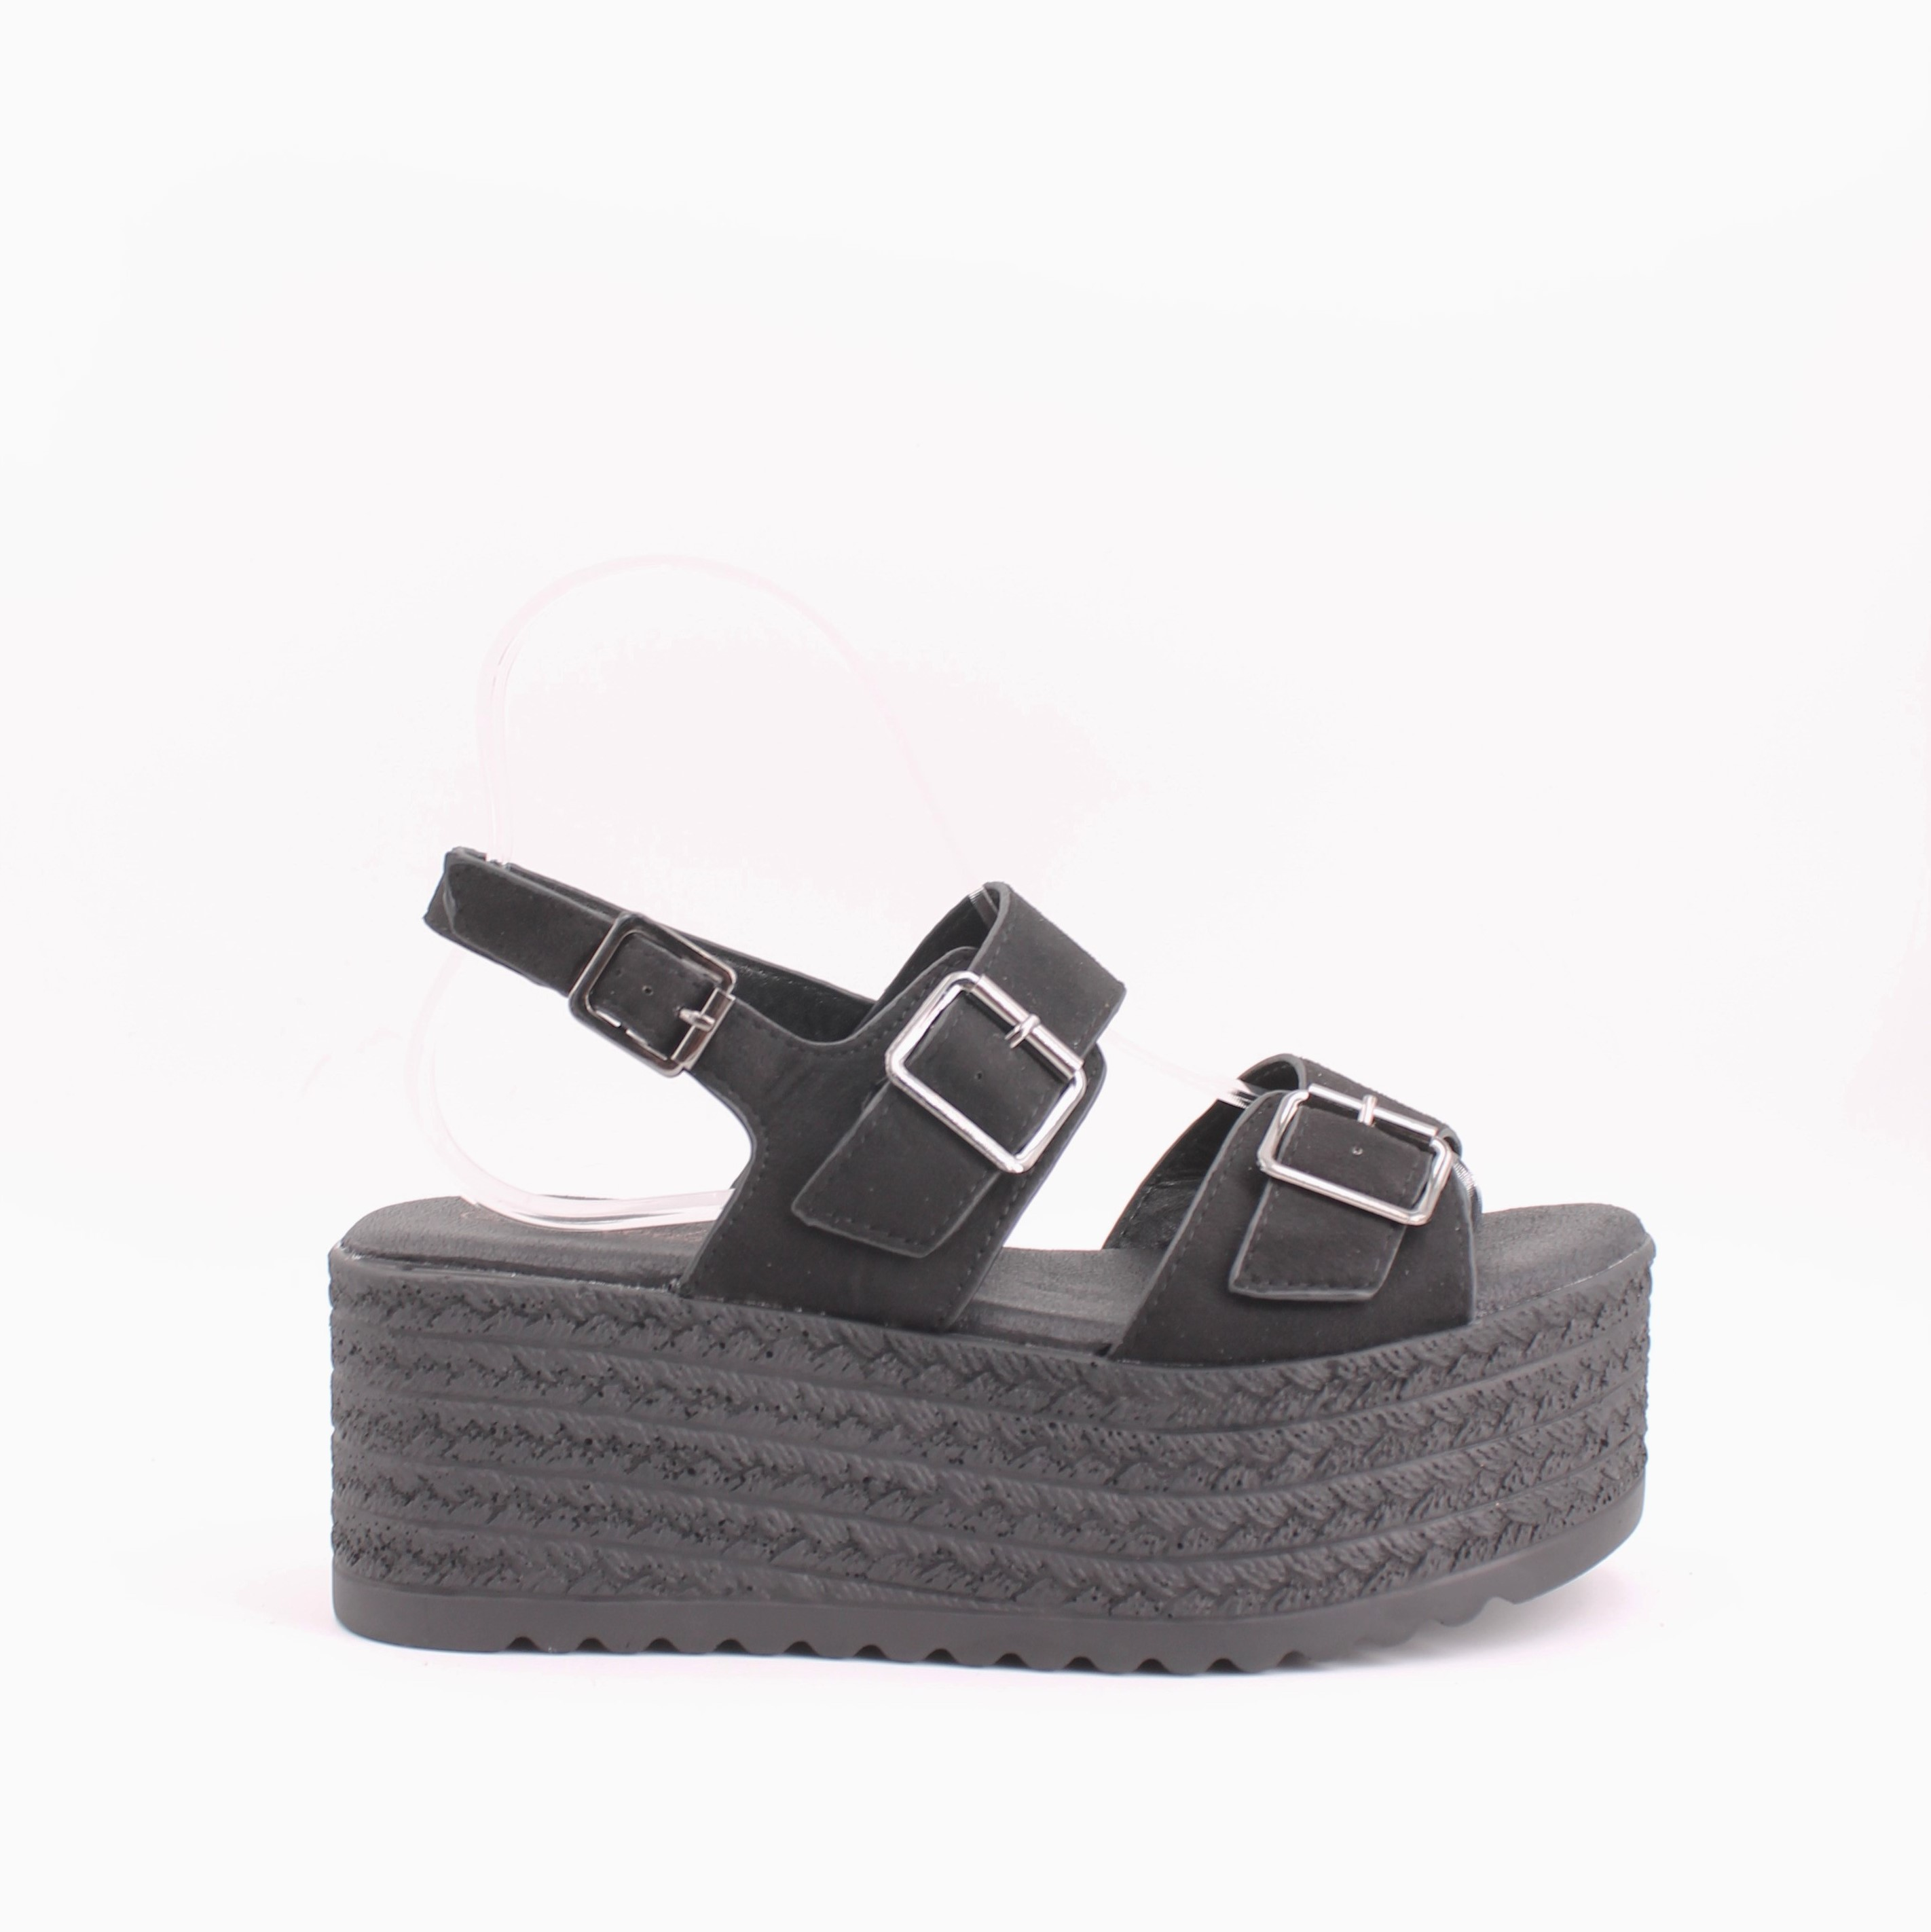 Summer Sandals For Woman With Design And Comfortable SHOES BEACH Black Cam Buckle Platform Sandals With Thick Sole